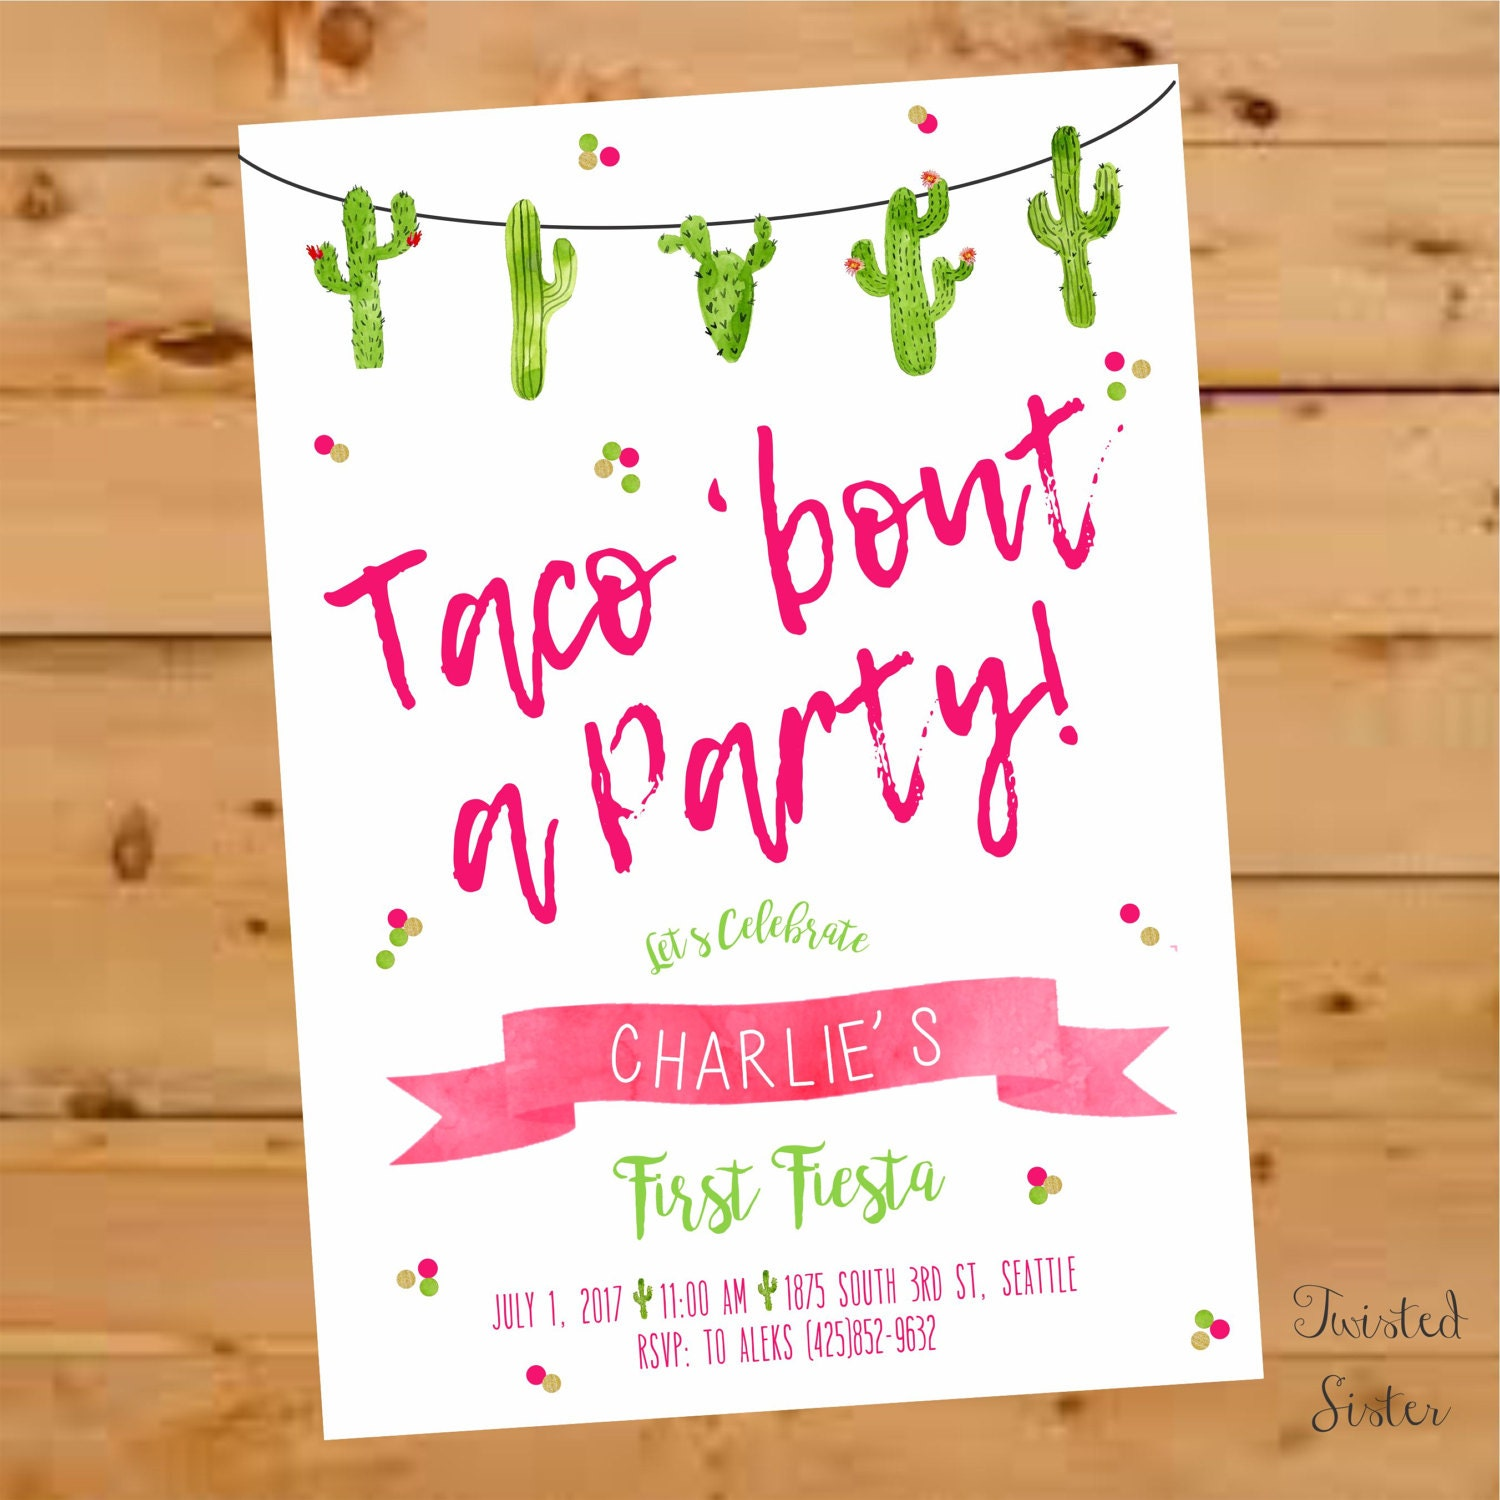 Taco Bout a Party Invitation Taco Bout a Party Invite fiesta